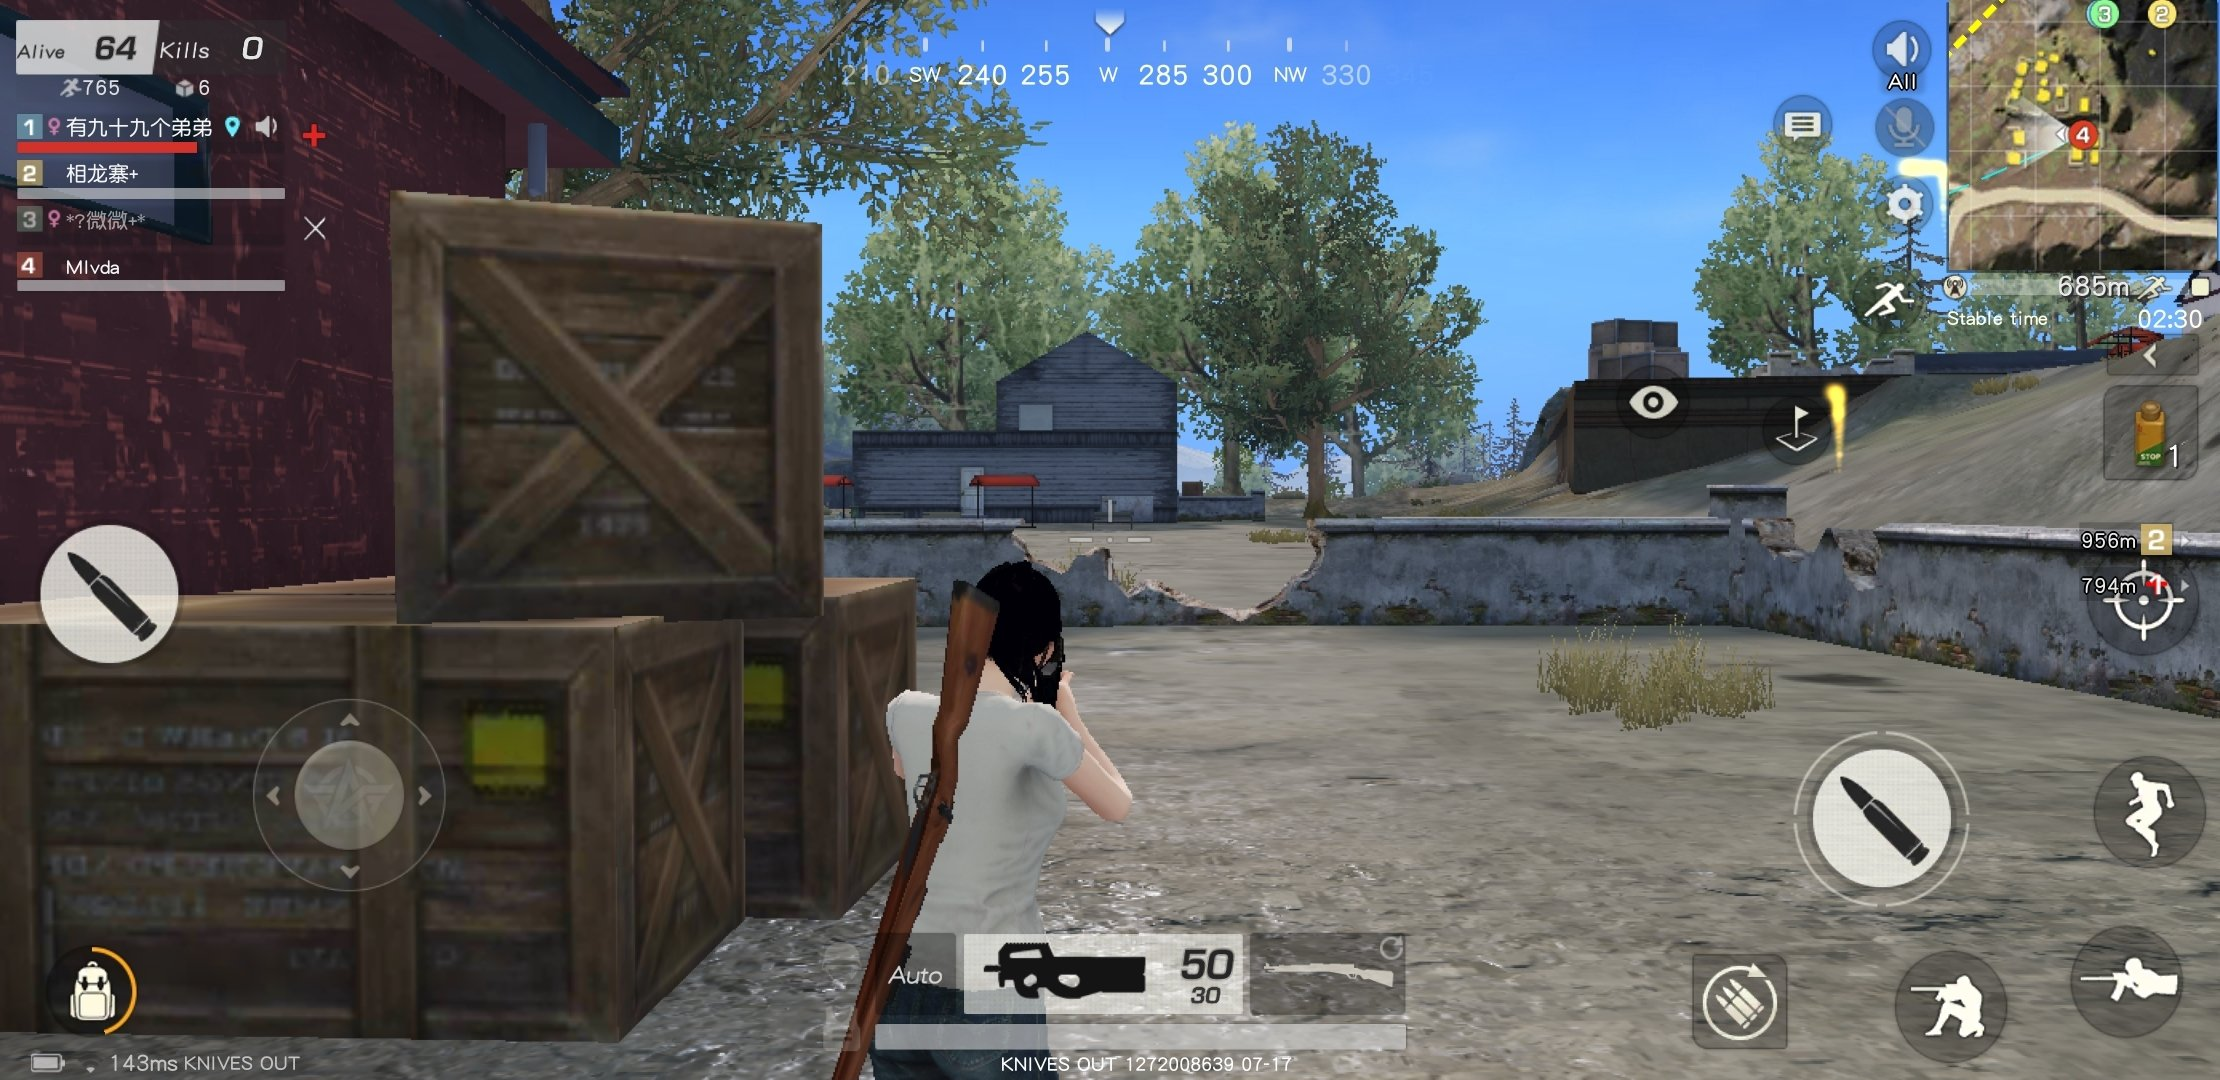 Knives Out 1 225 427388 - Download for Android APK Free